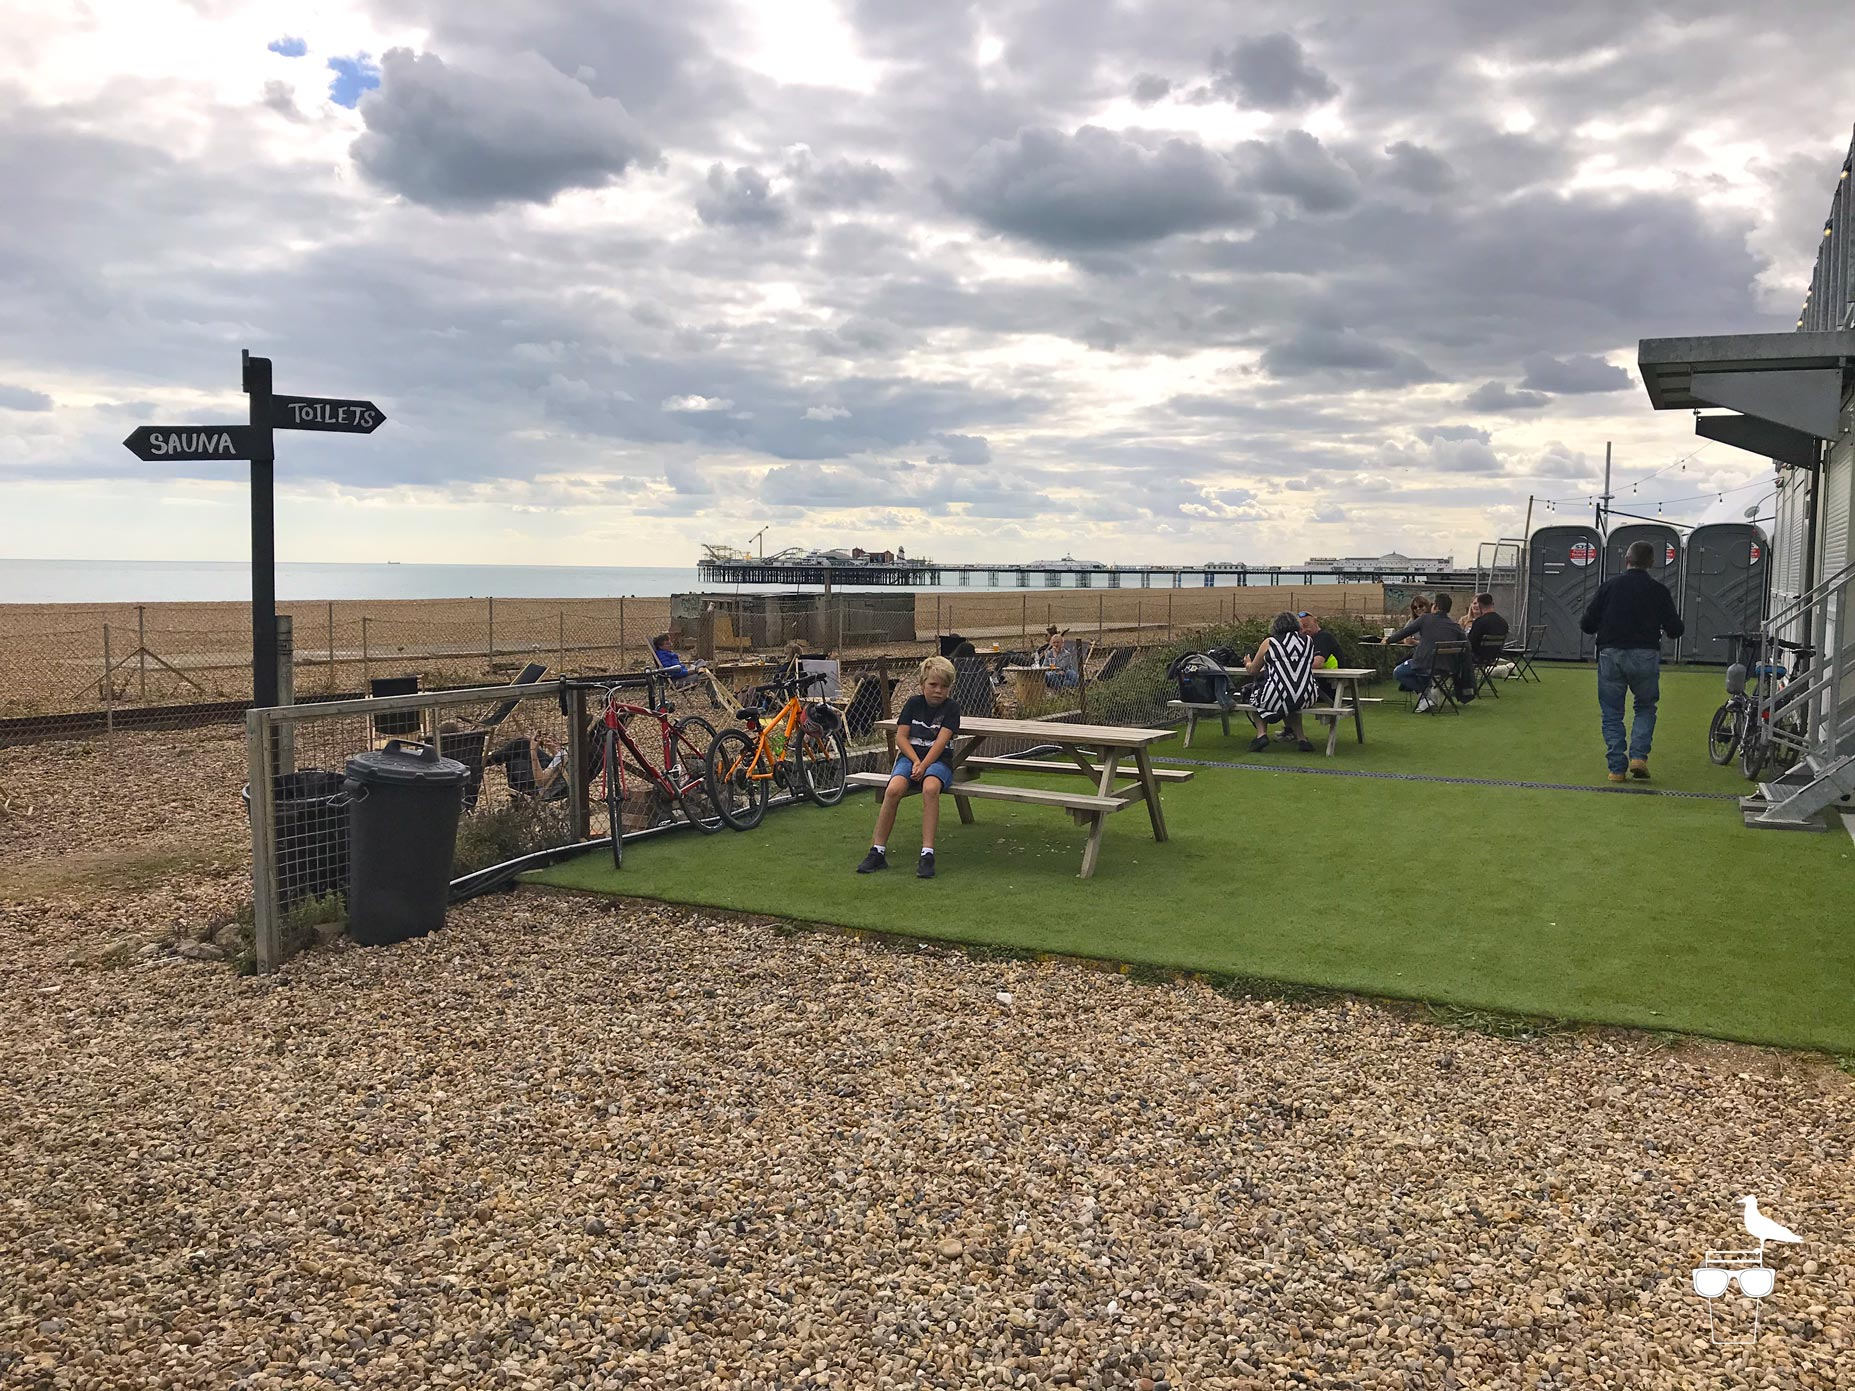 bison-beach-bar-brighton-beach-view-seating